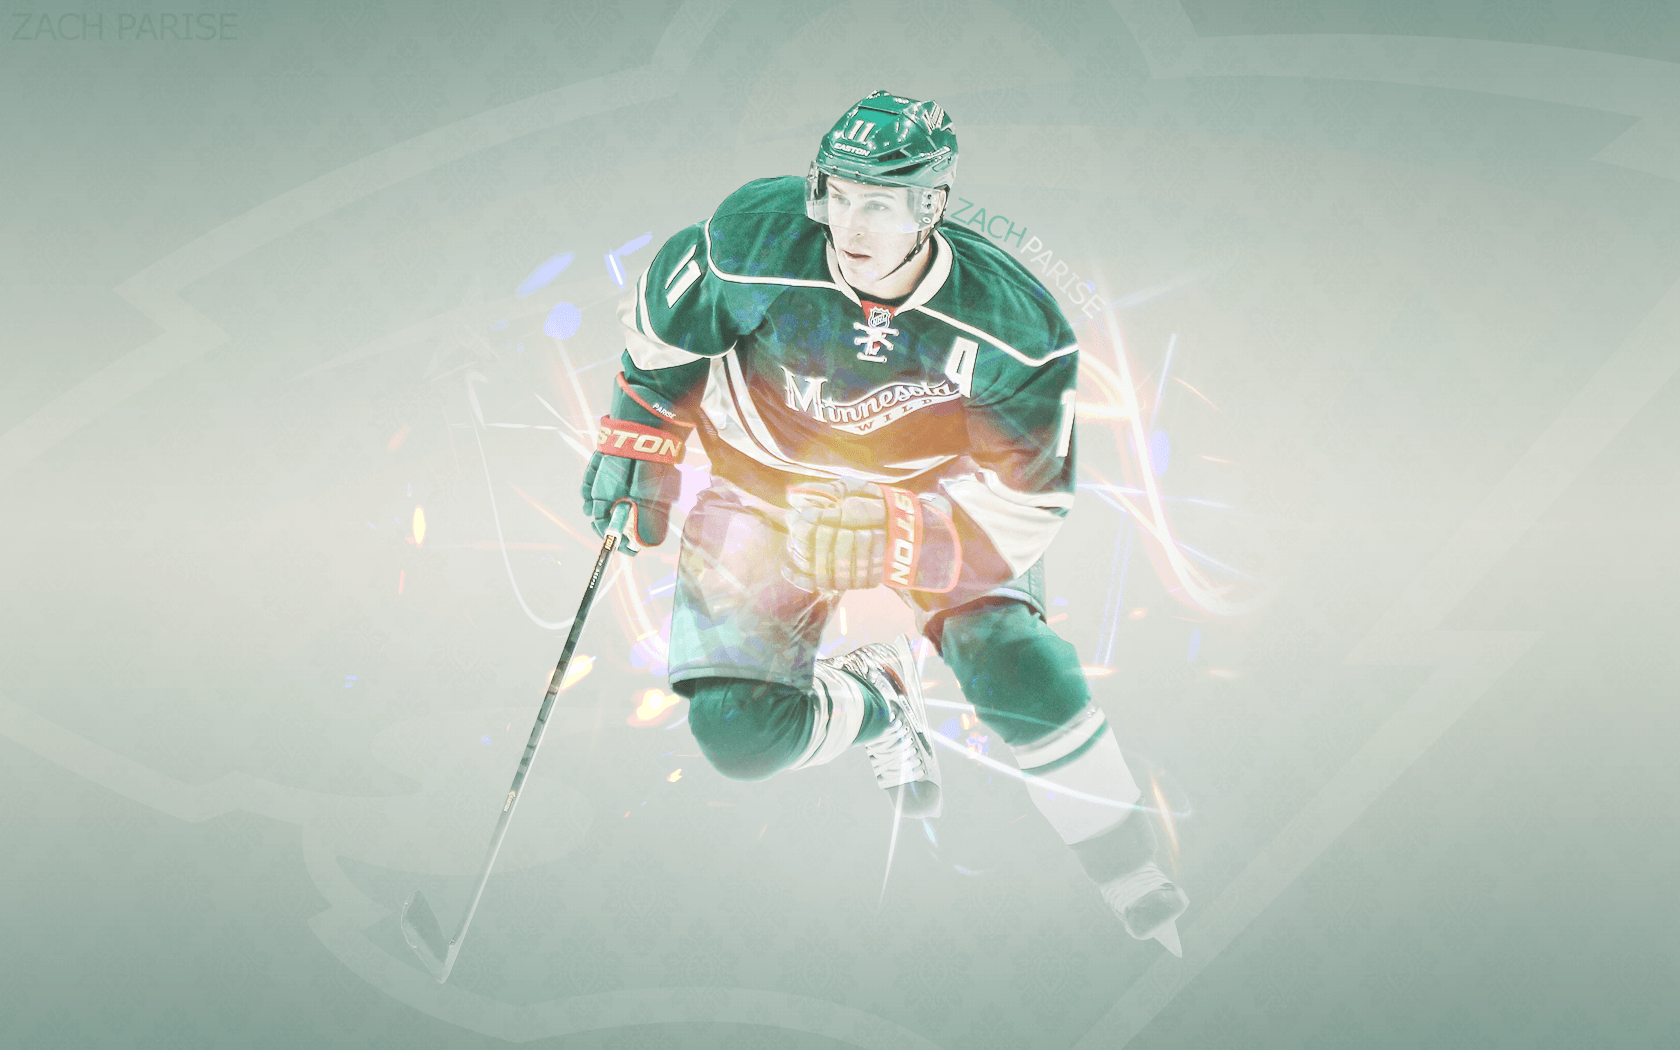 NHL Minnesota Wild Hockey Parise wallpapers HD 2016 in Hockey